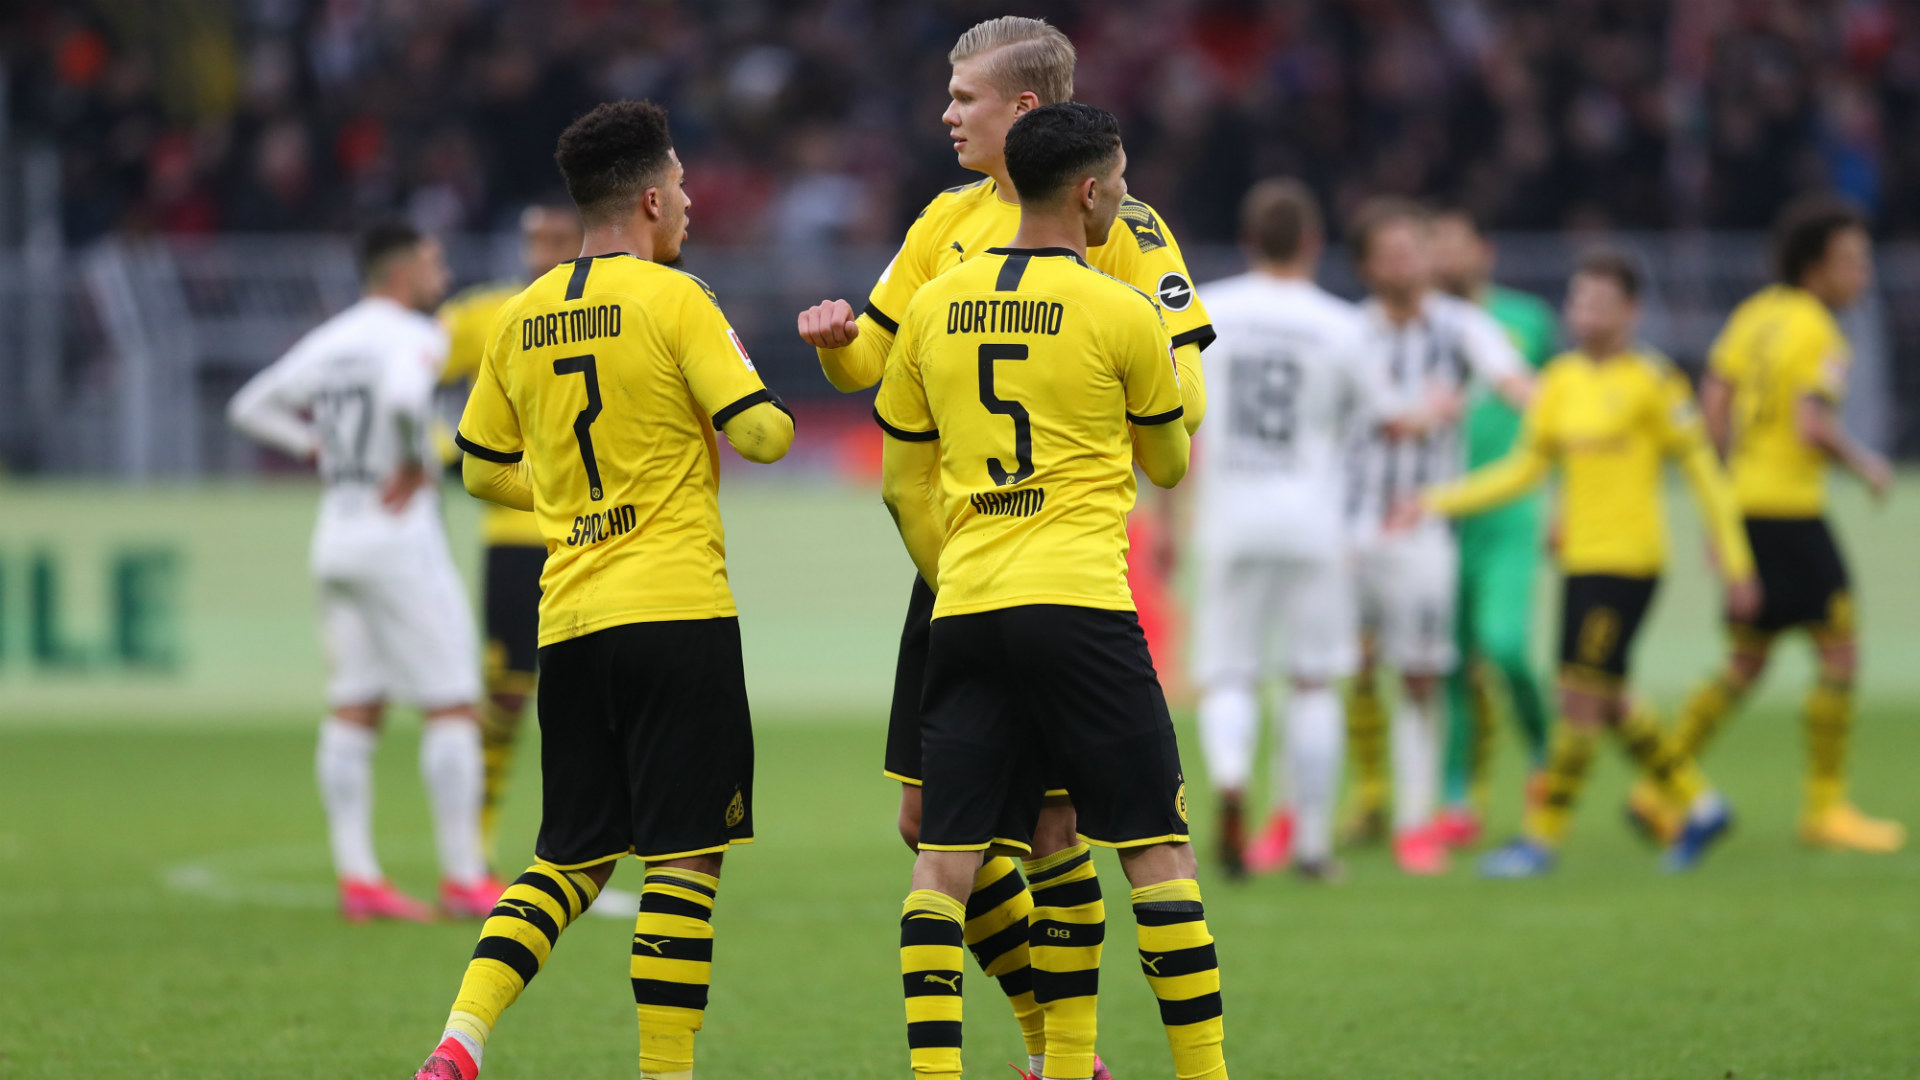 Borussia Dortmund vs Schalke Betting Tips: Latest odds, team news ...